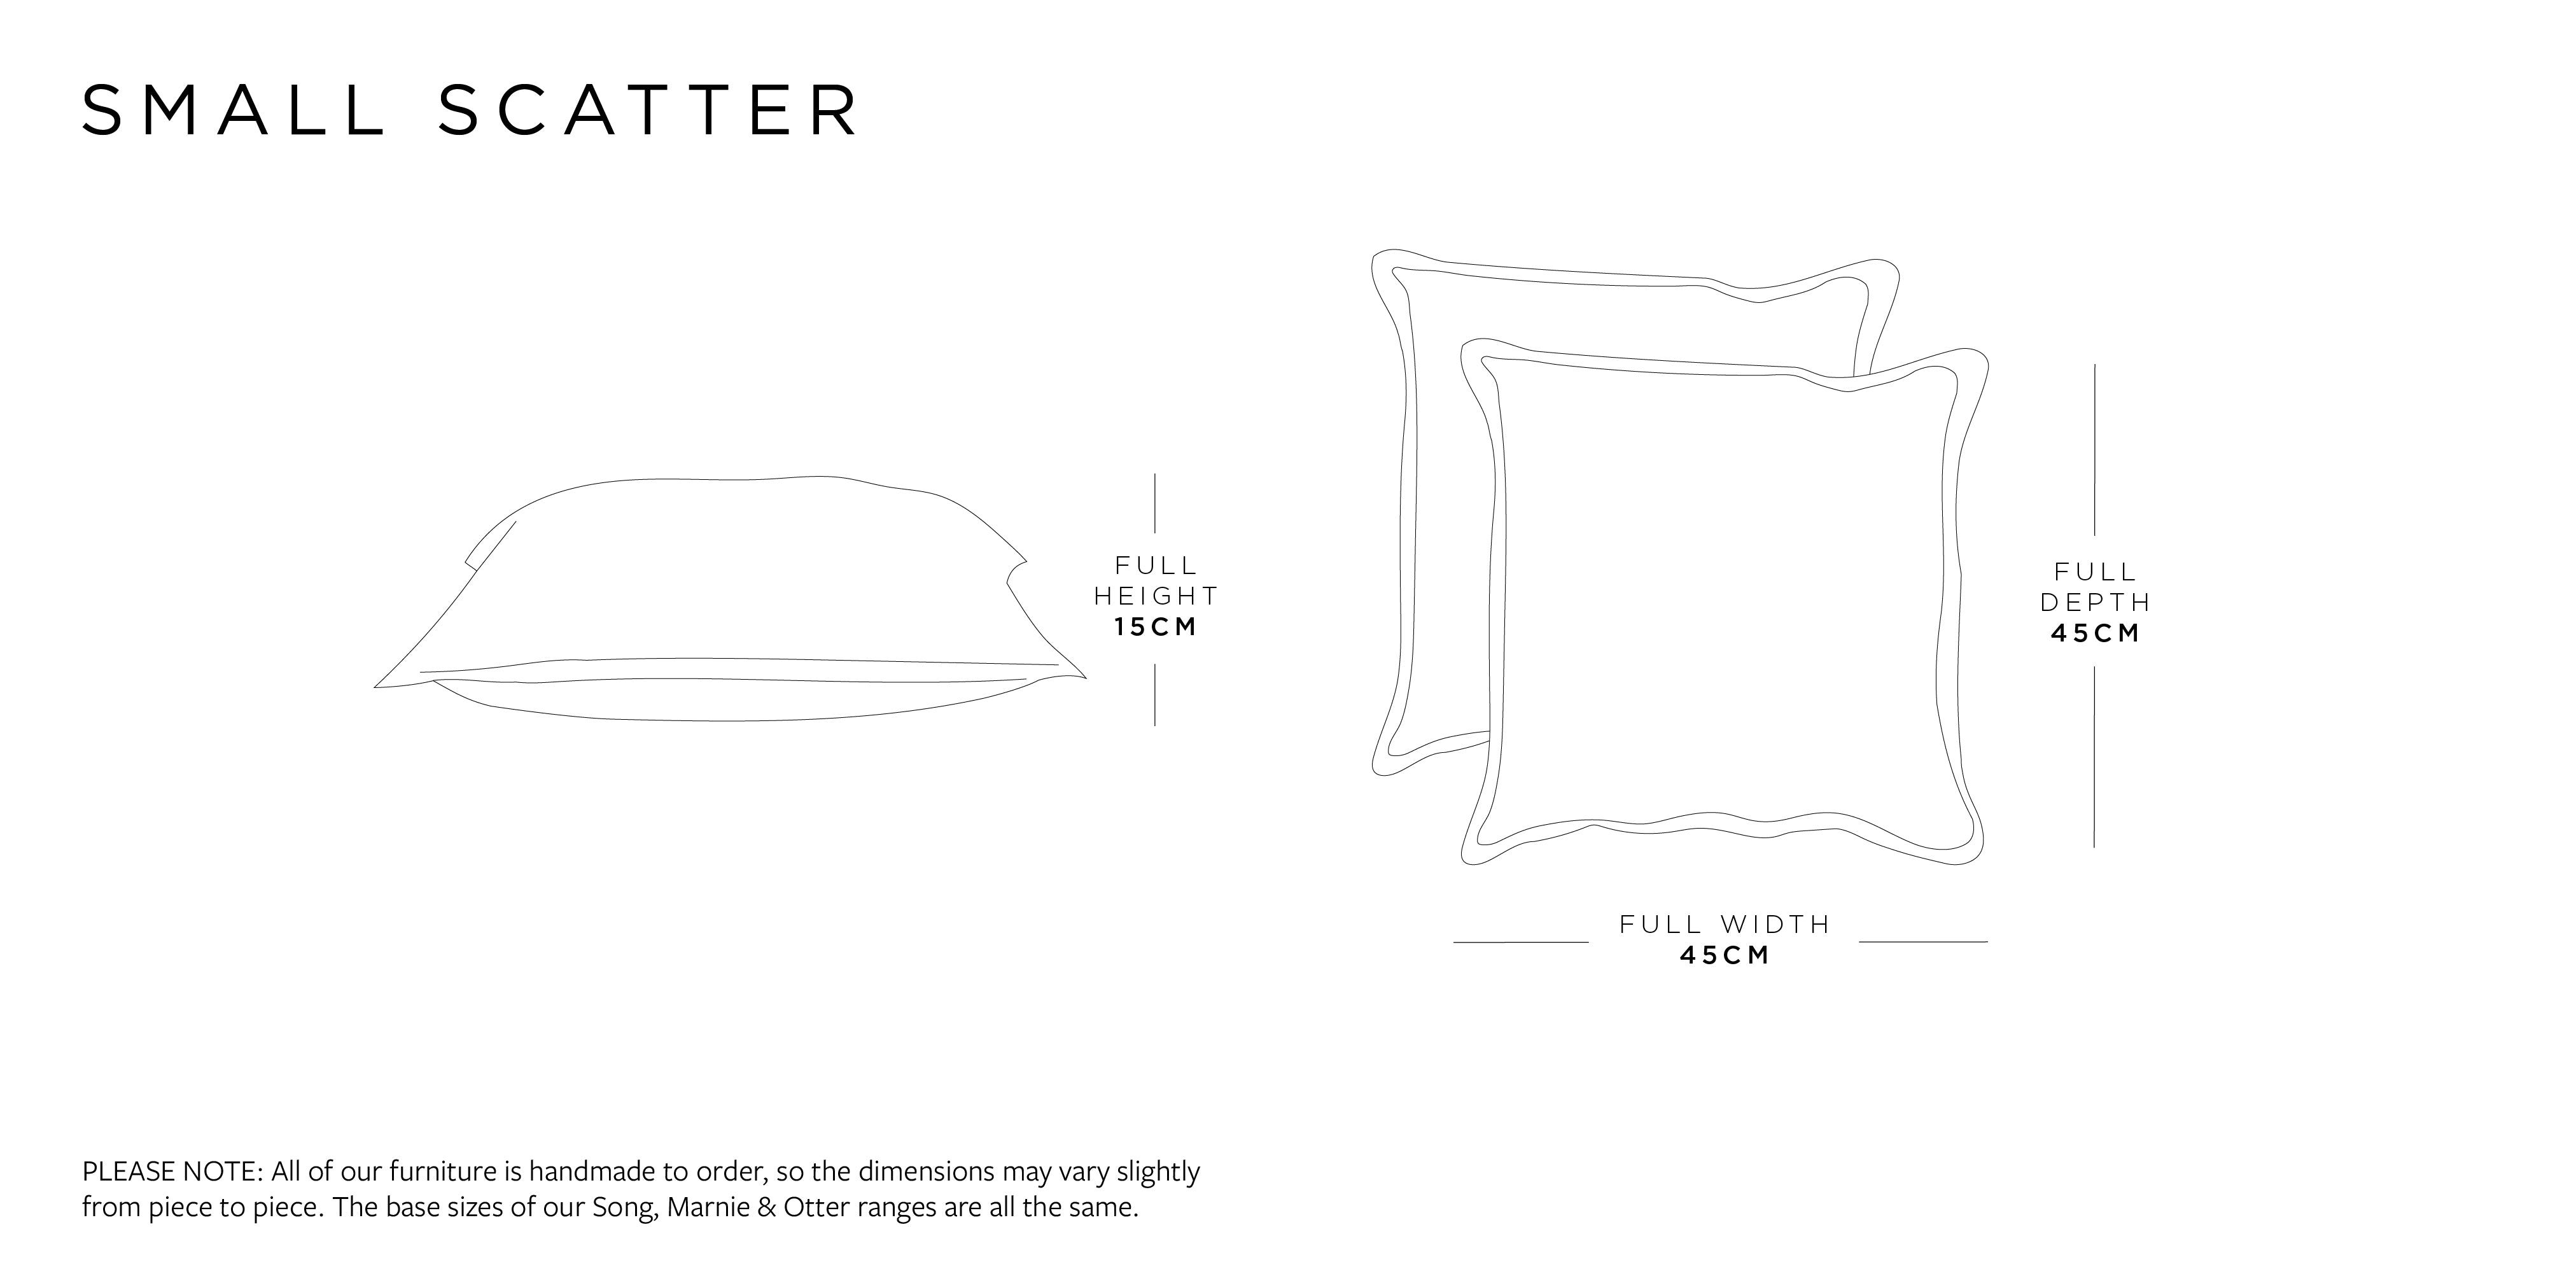 Small Scatter Cushion Dimensions